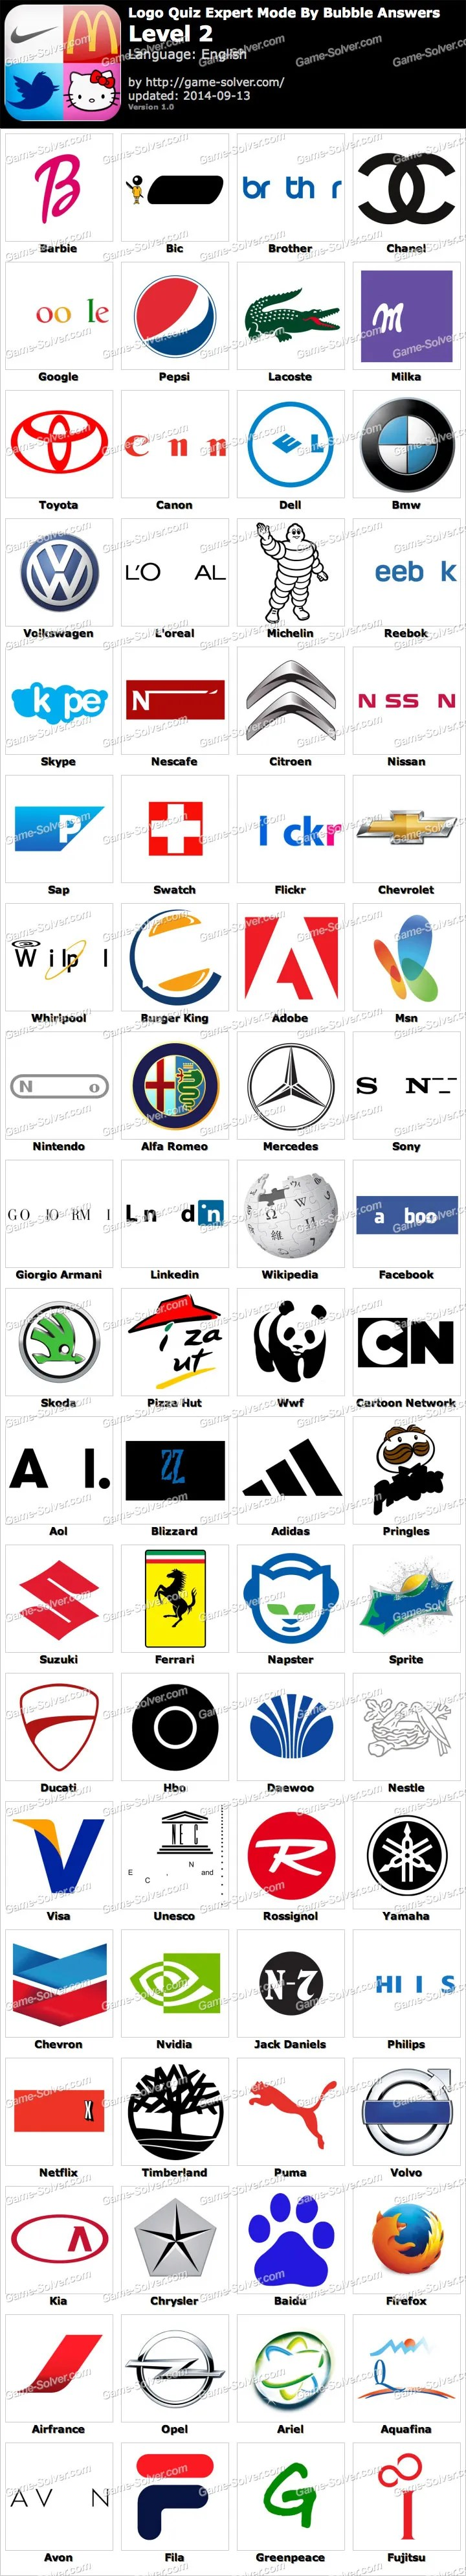 Logo Quiz Answers Level 2 : answers, level, Expert, Bubble, Level, Solver